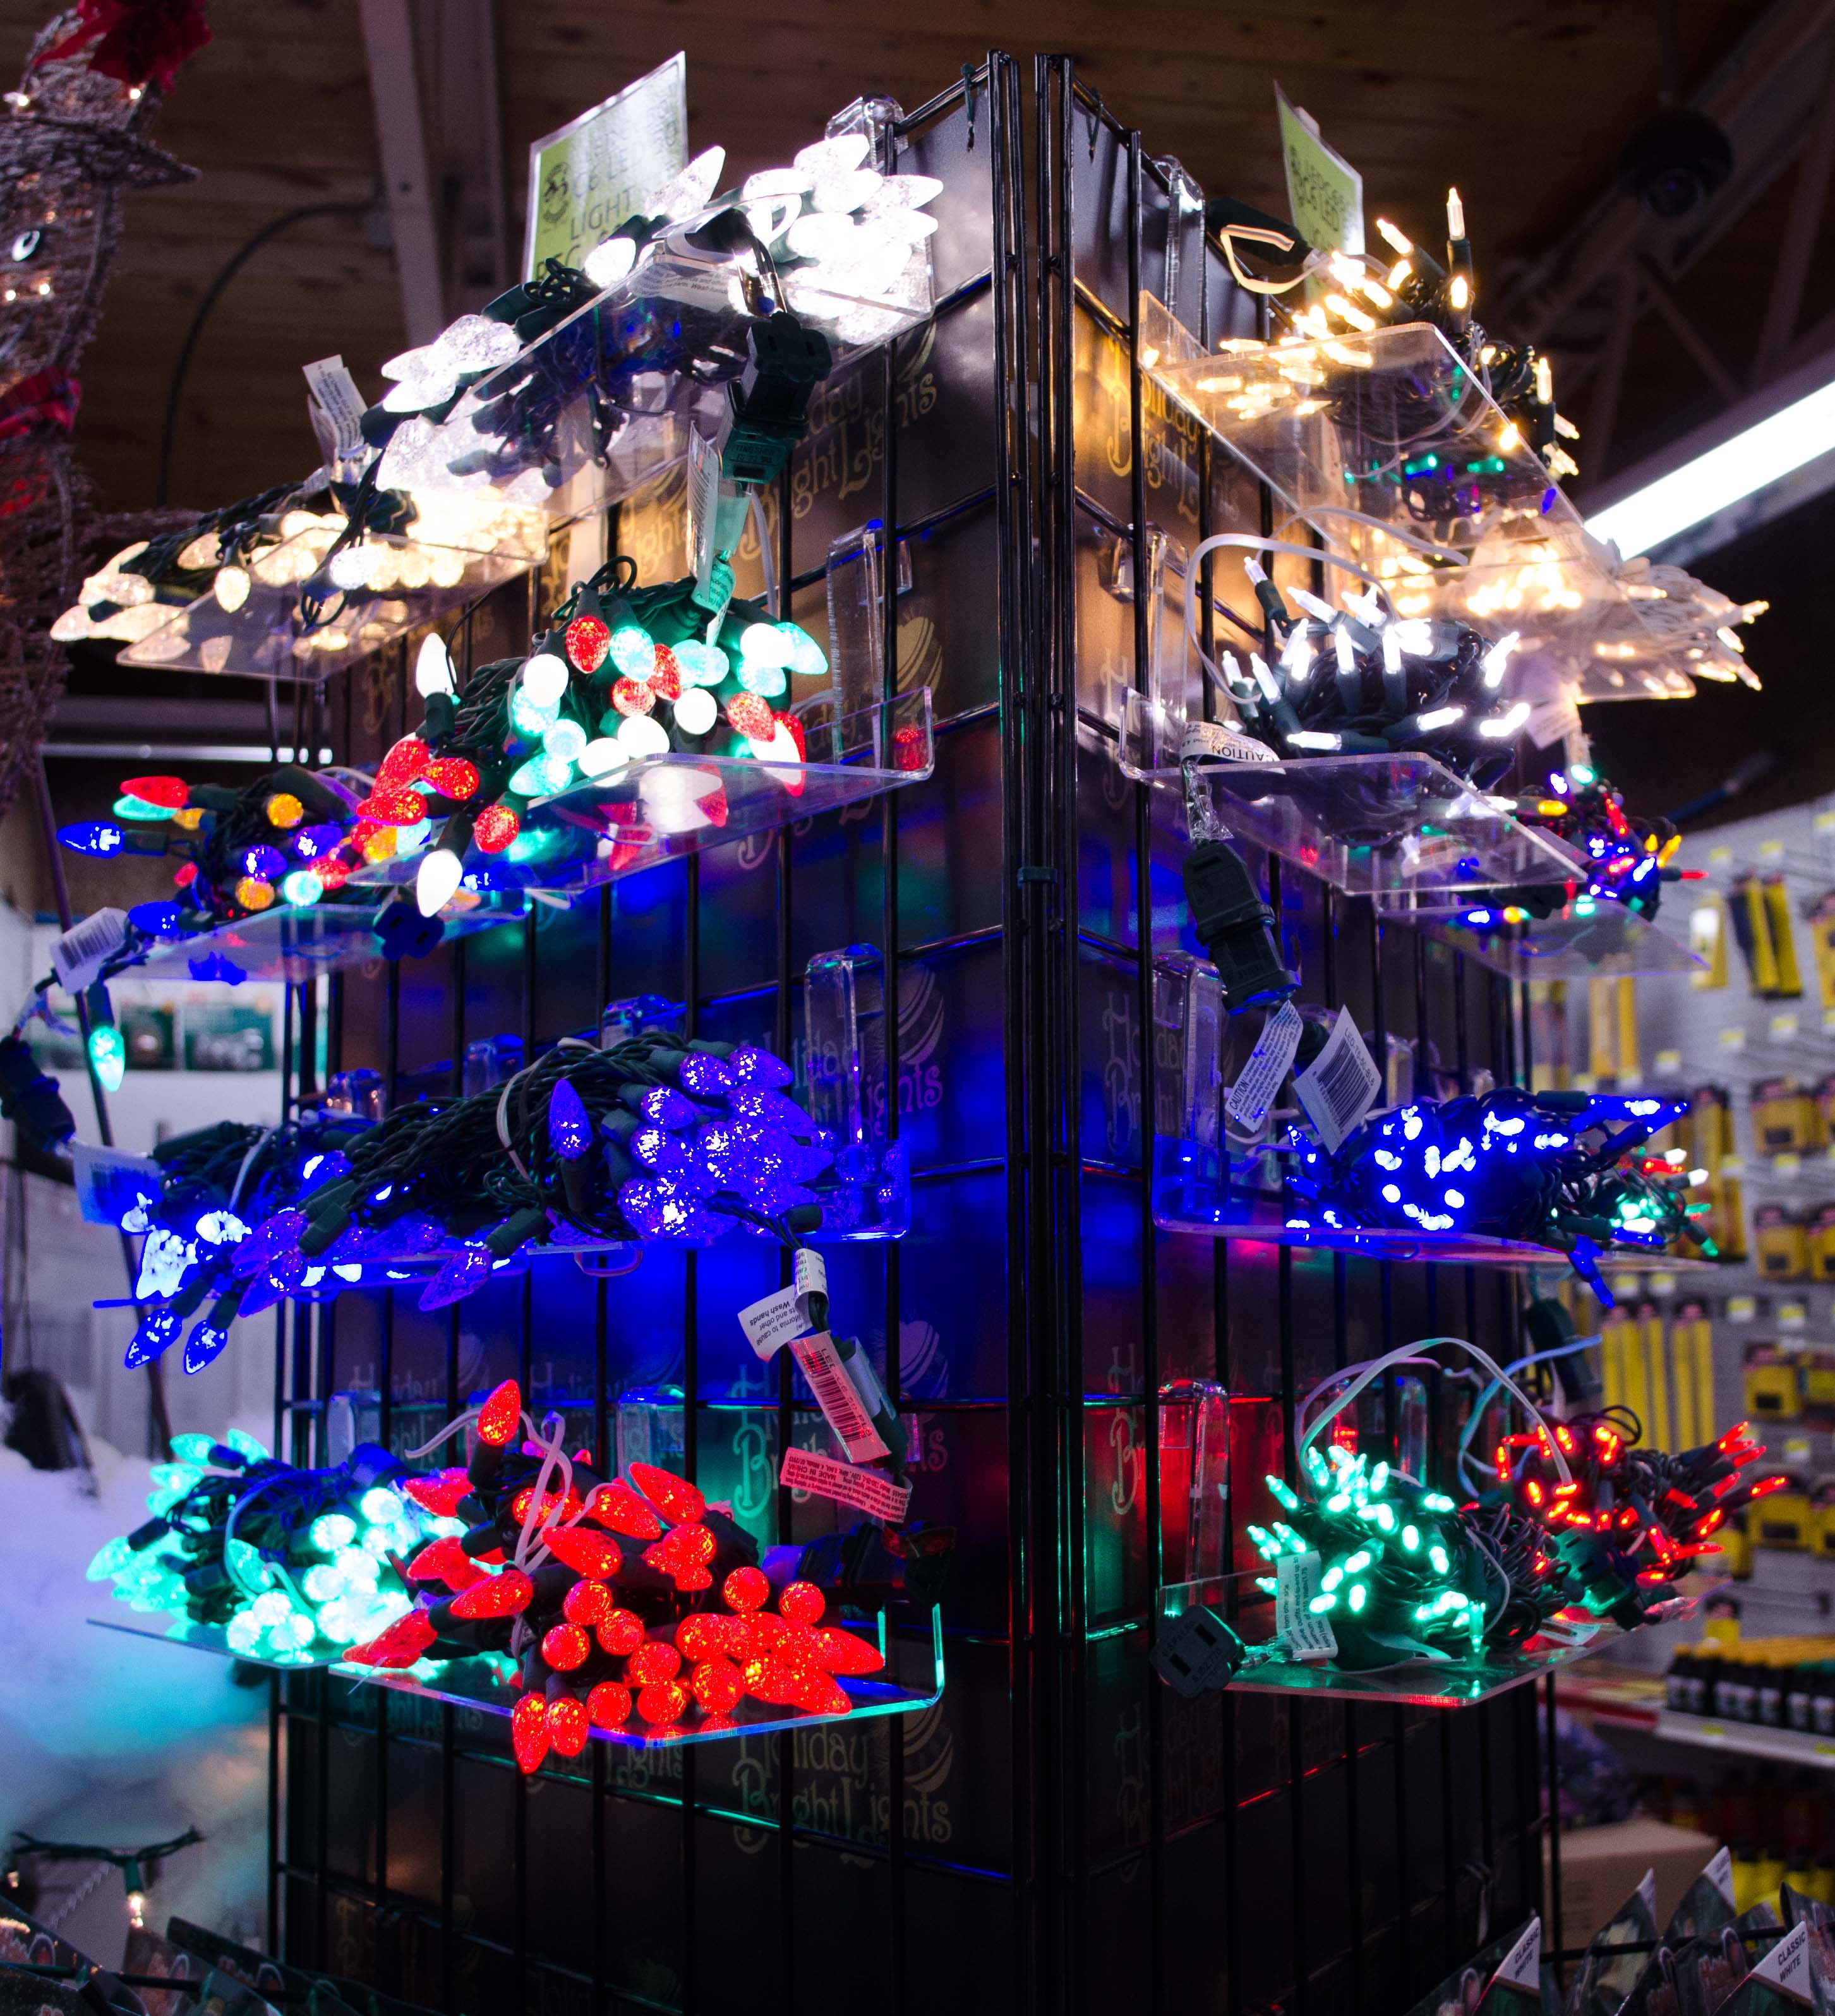 Christmas lights in all colors and shapes - Smith and Edwards